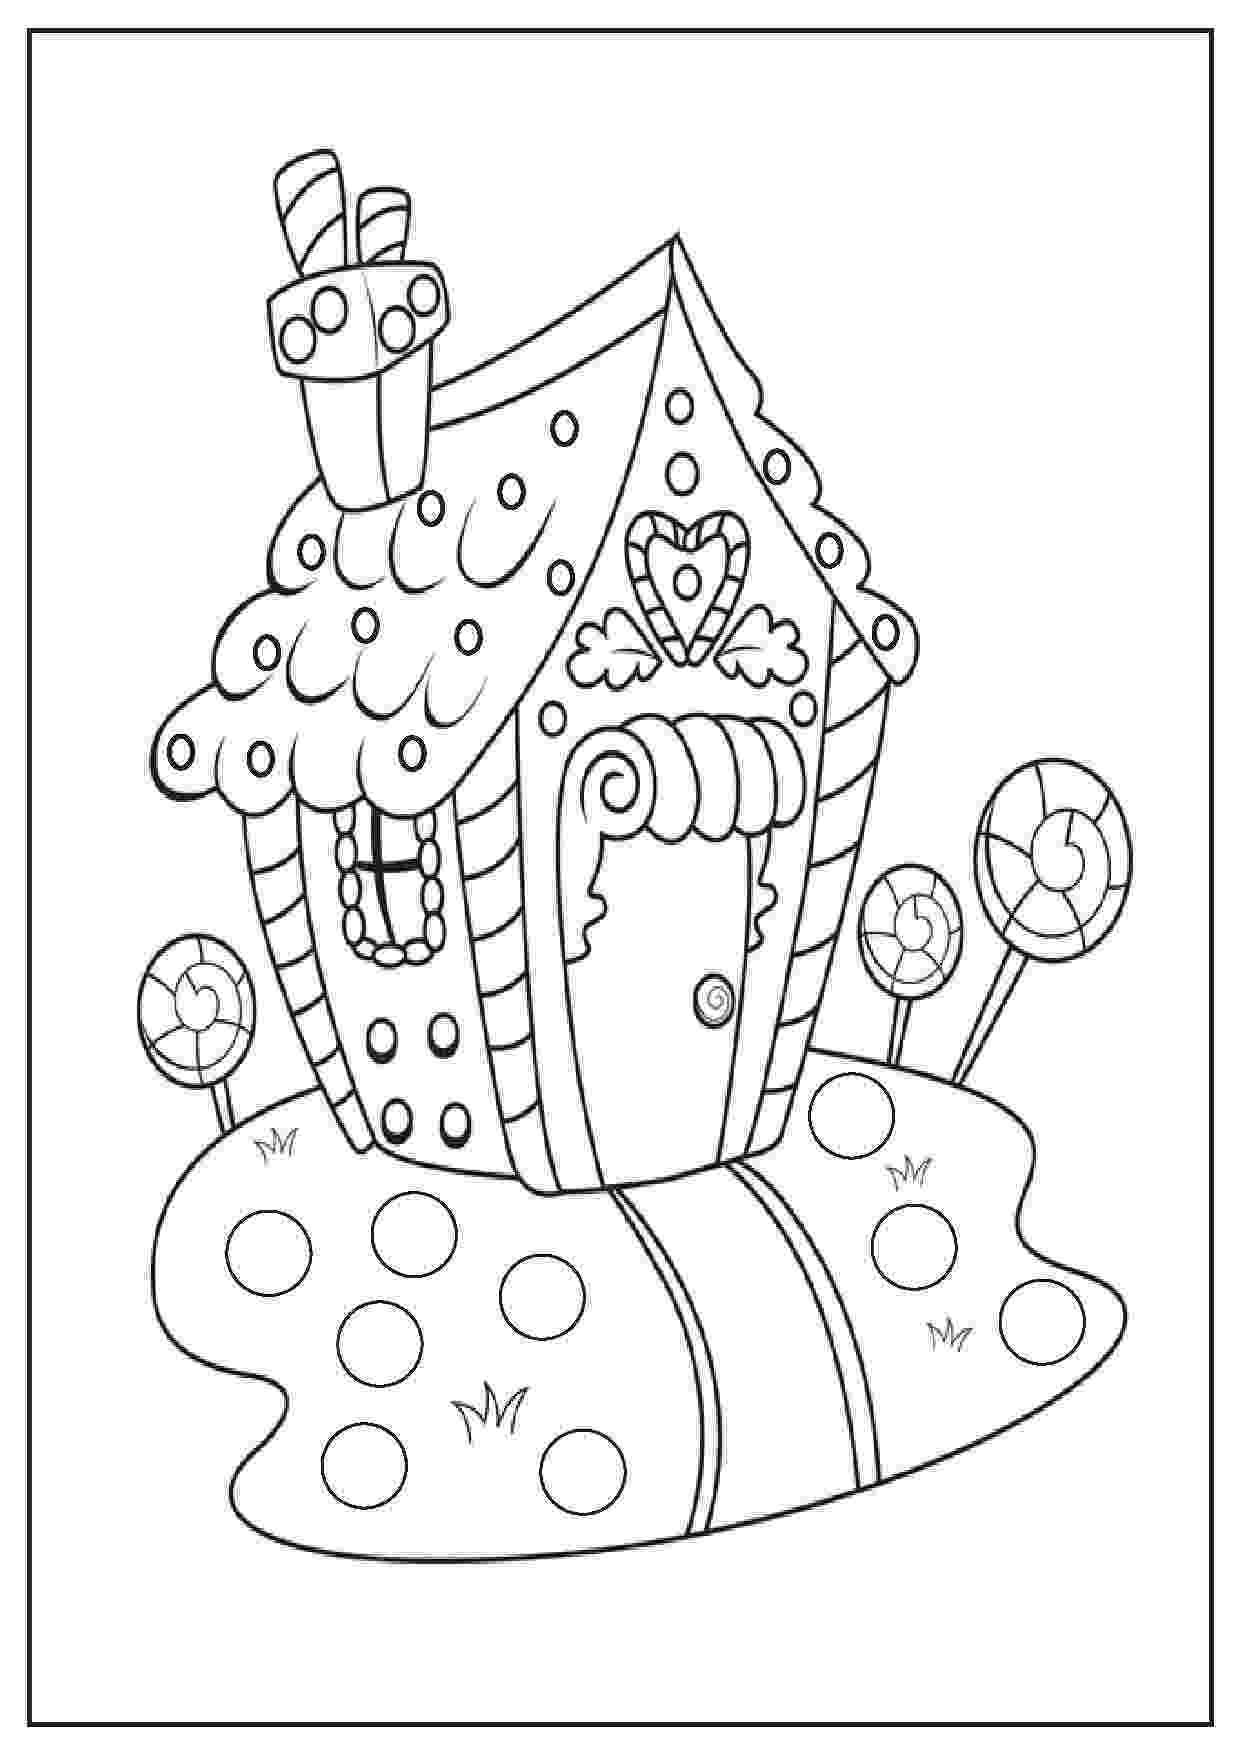 full page coloring pages free colouring pages page pages full coloring